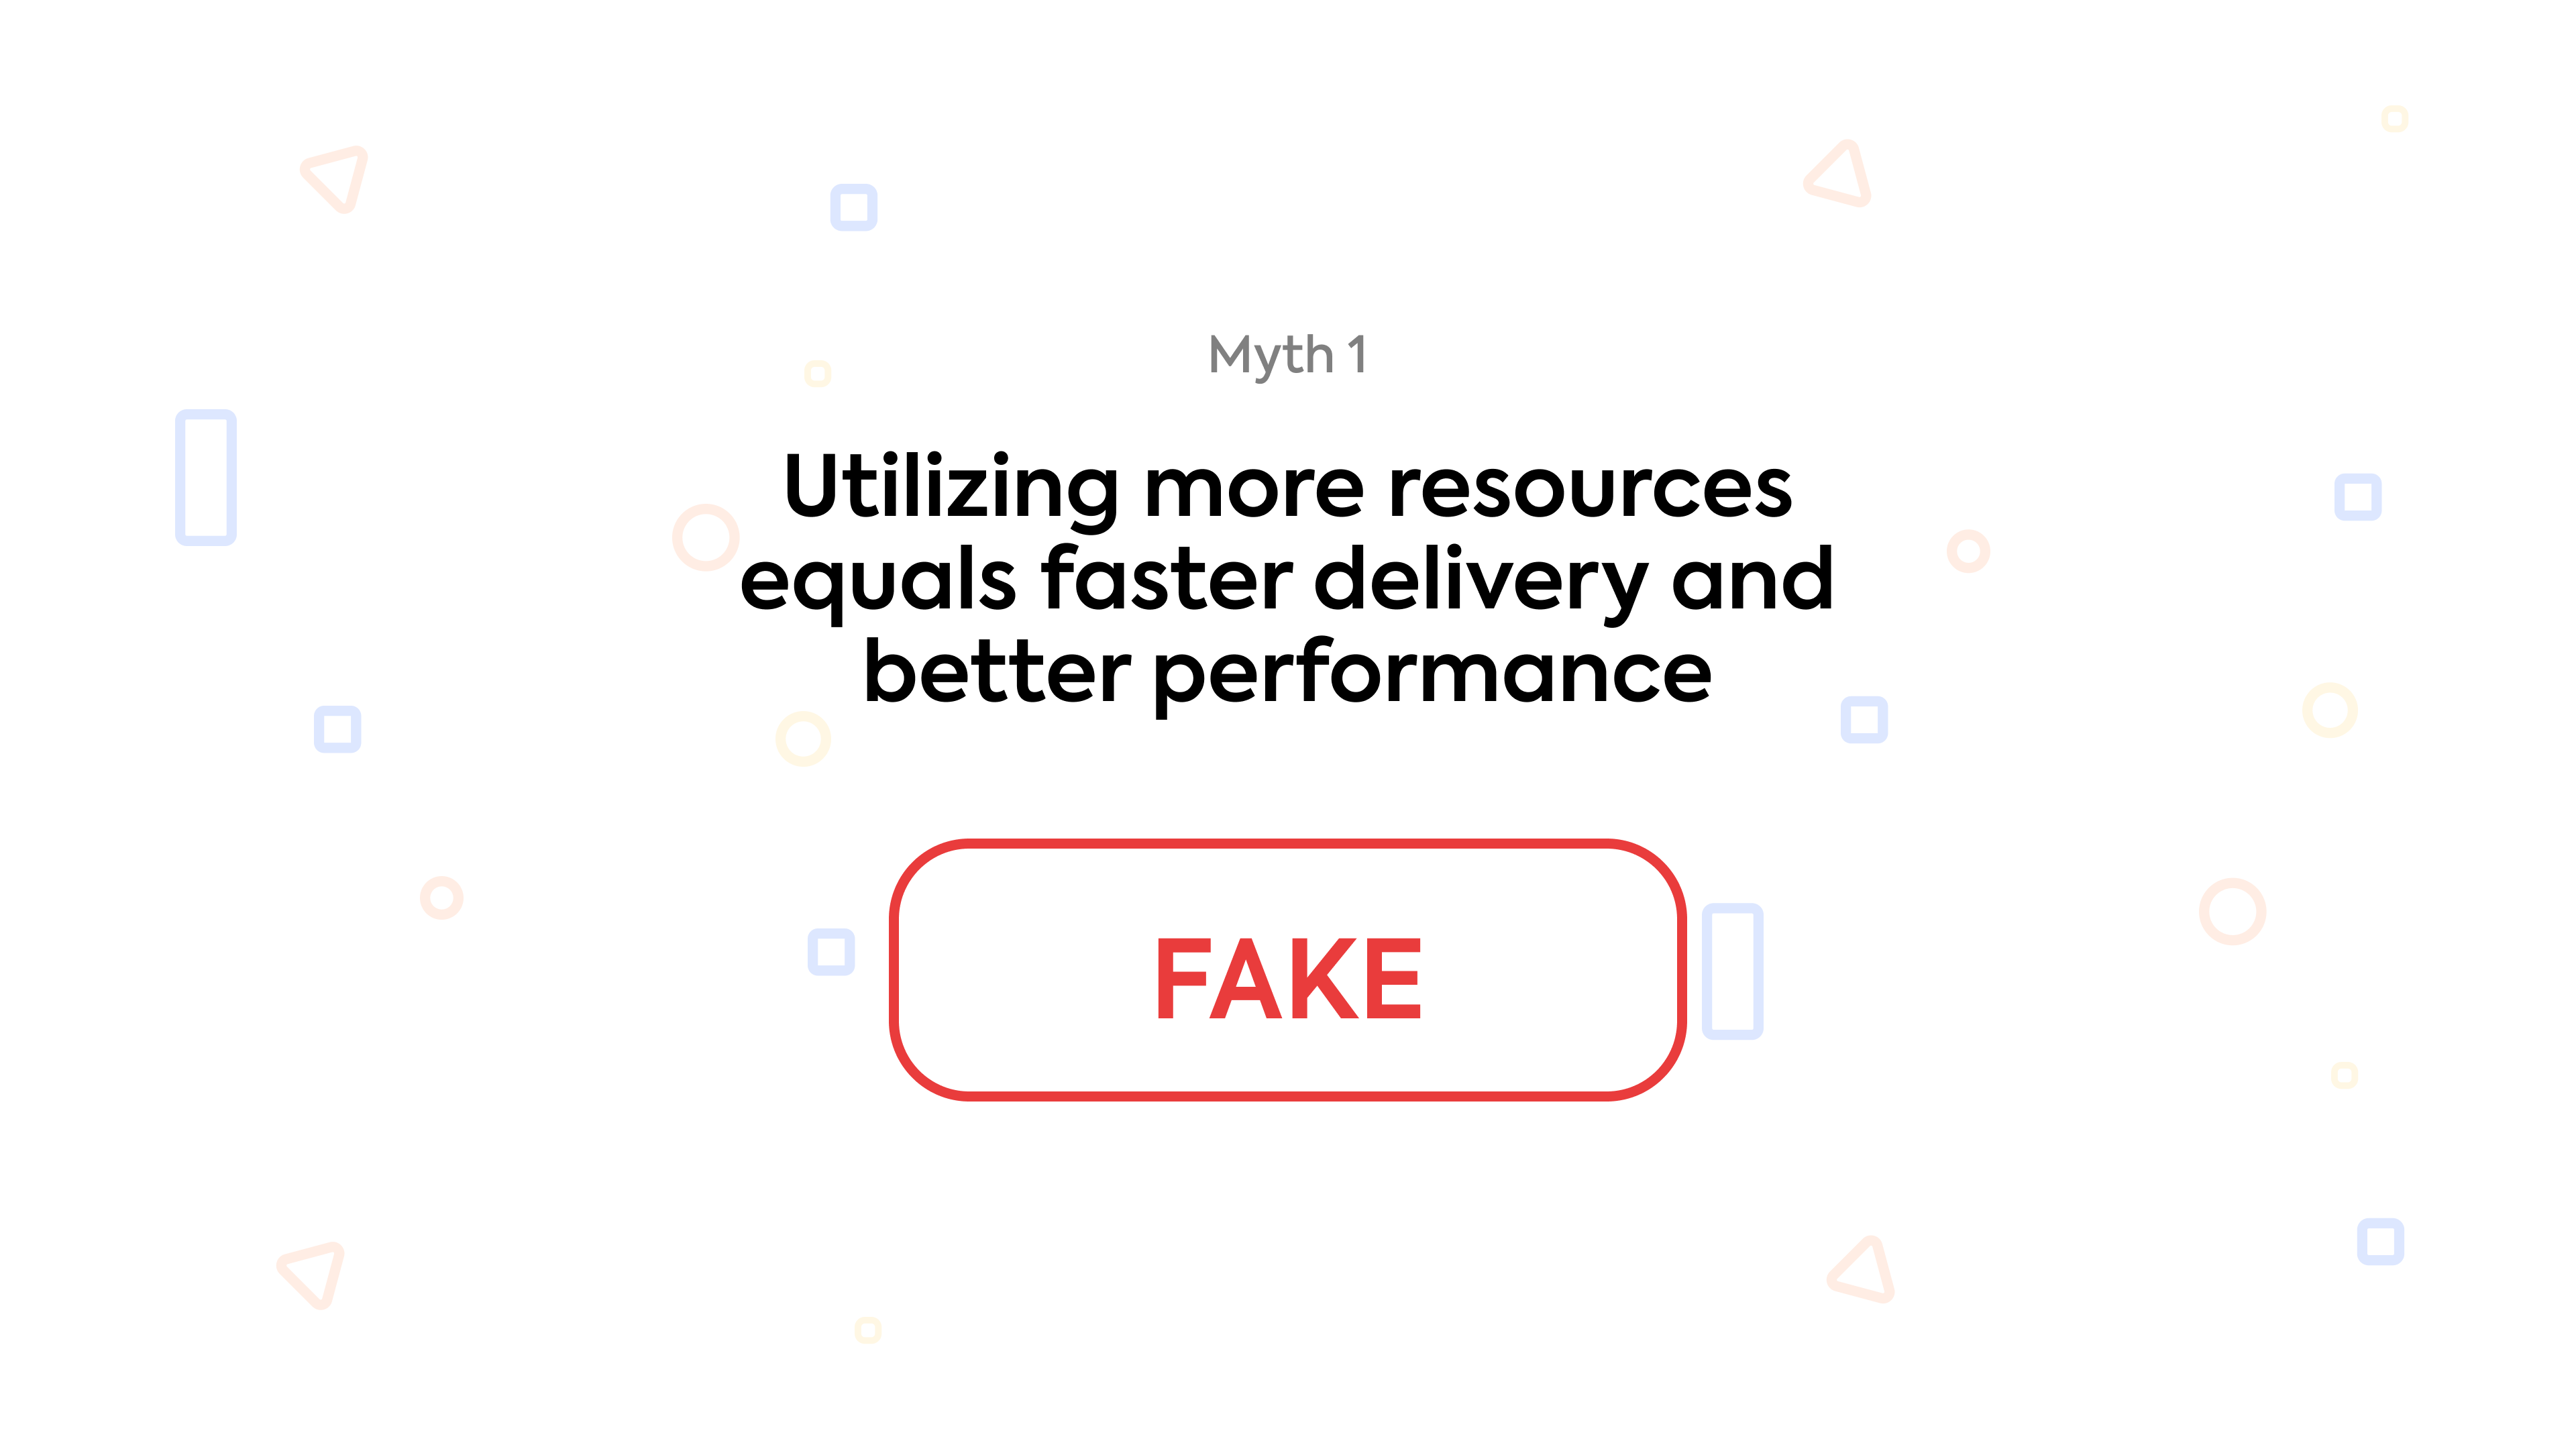 Myth 1: Utilizing more resources equals faster delivery and better performance